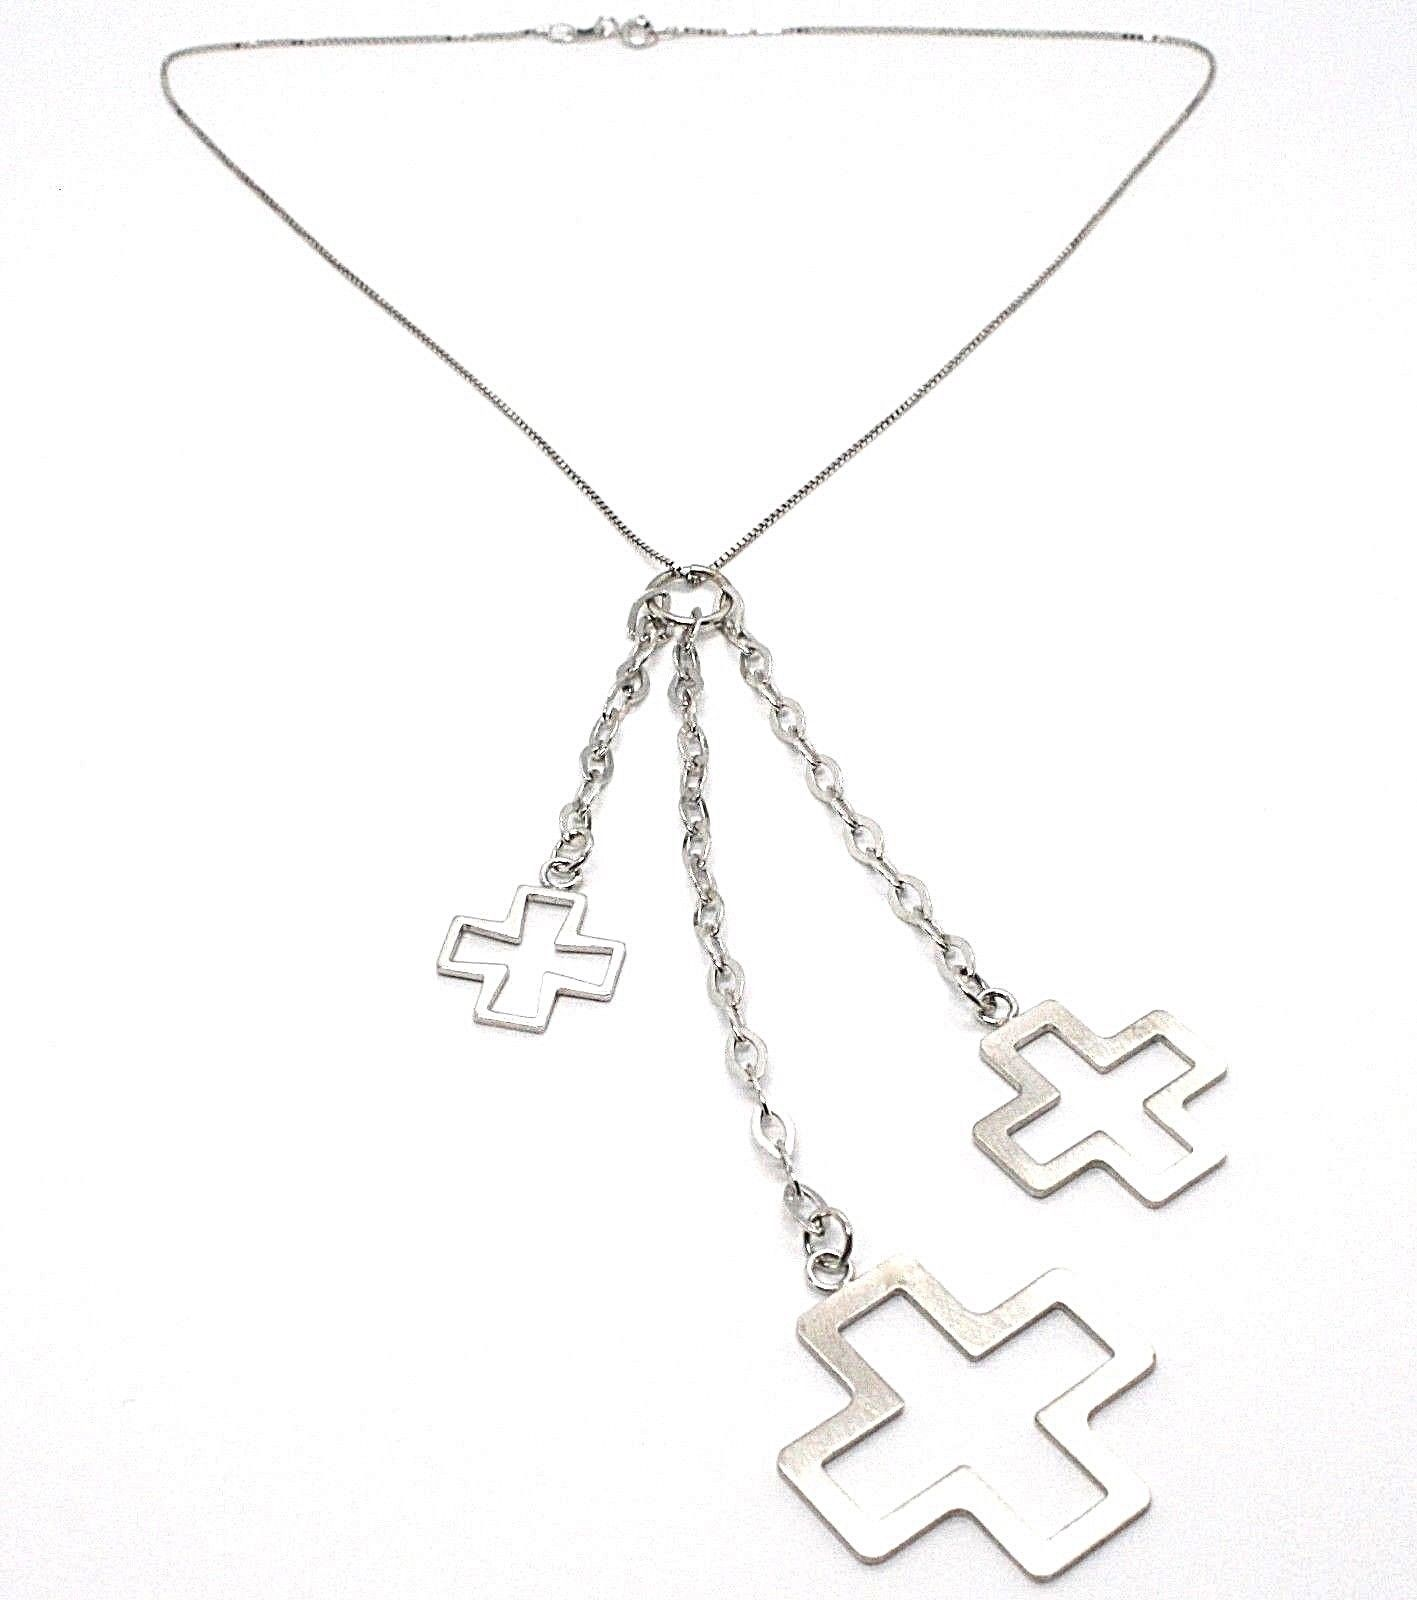 Silver necklace 925 Chain Veneta, Three Crosses Pendants, shiny and Satin